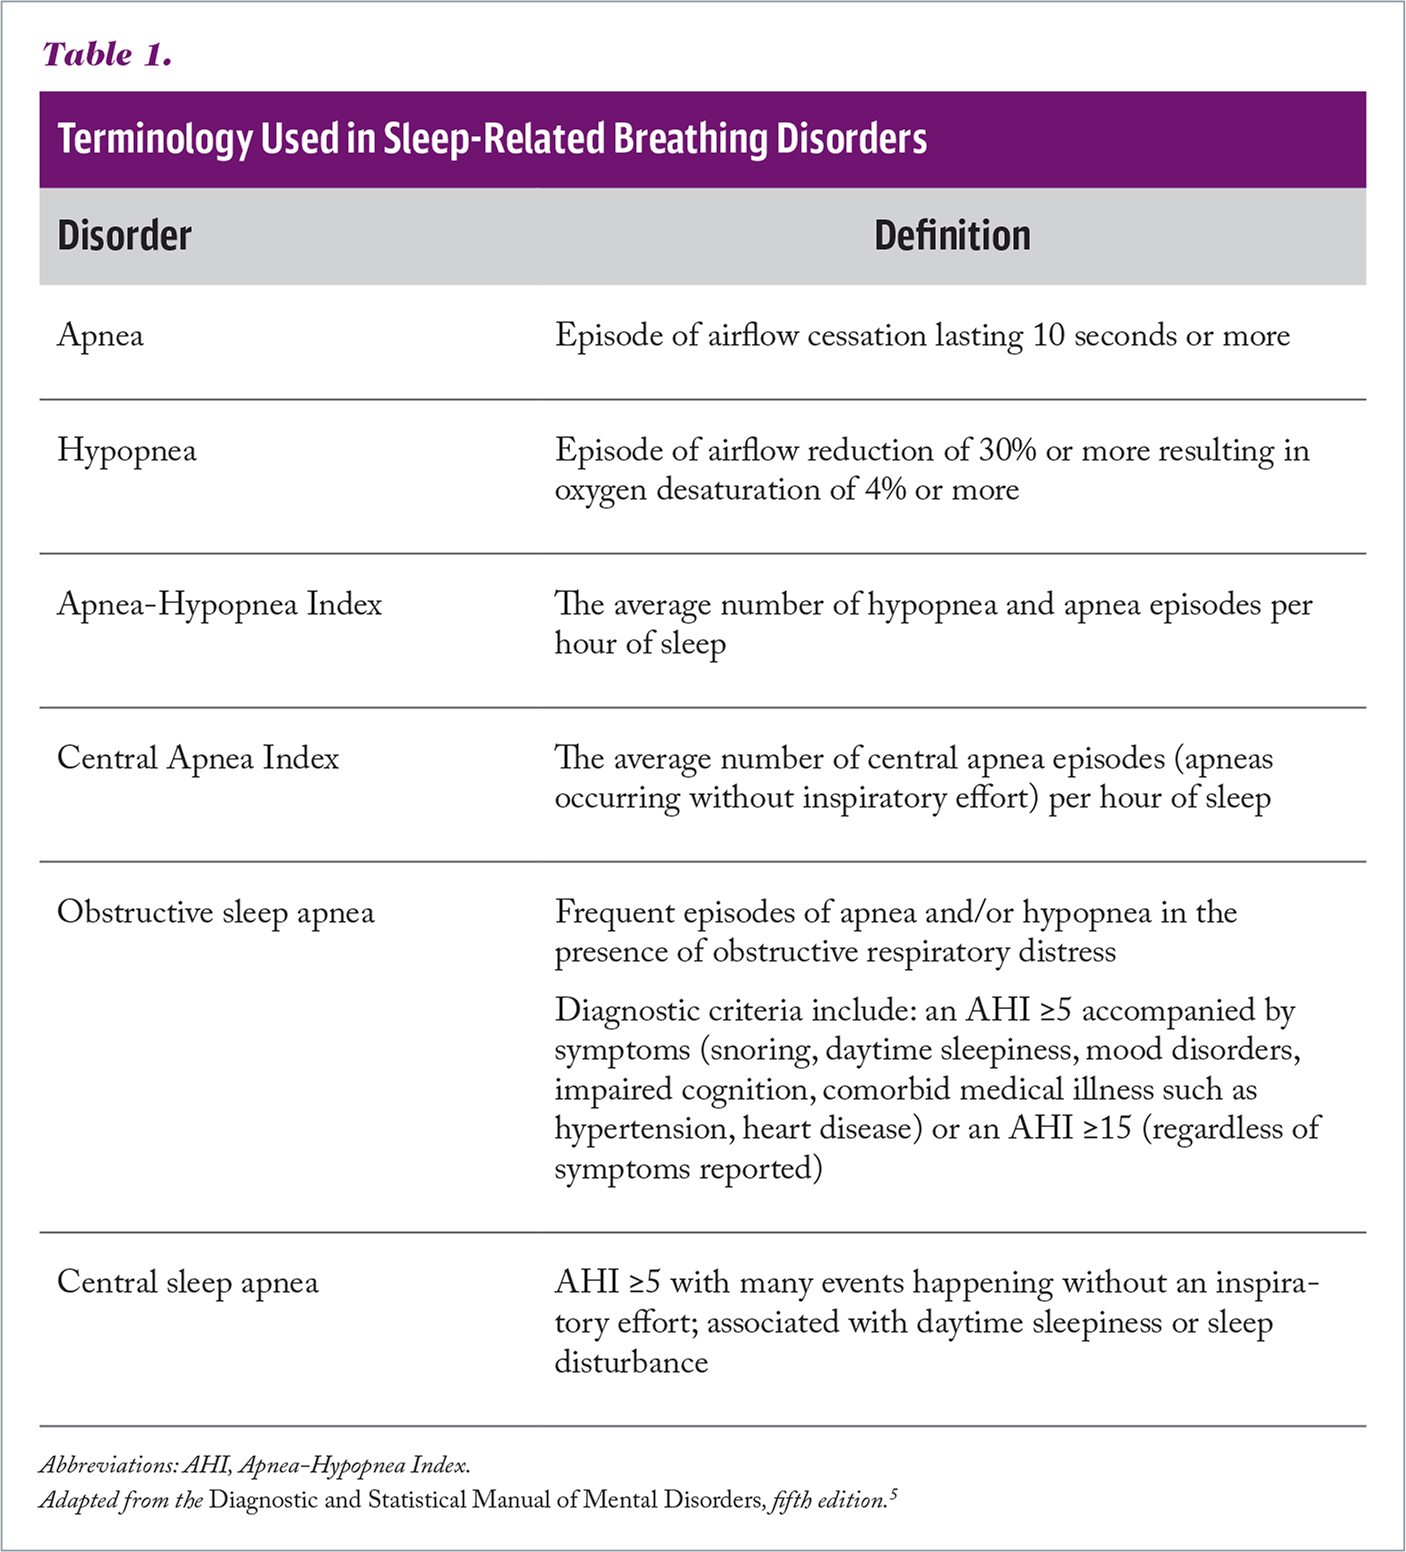 Terminology Used in Sleep-Related Breathing Disorders